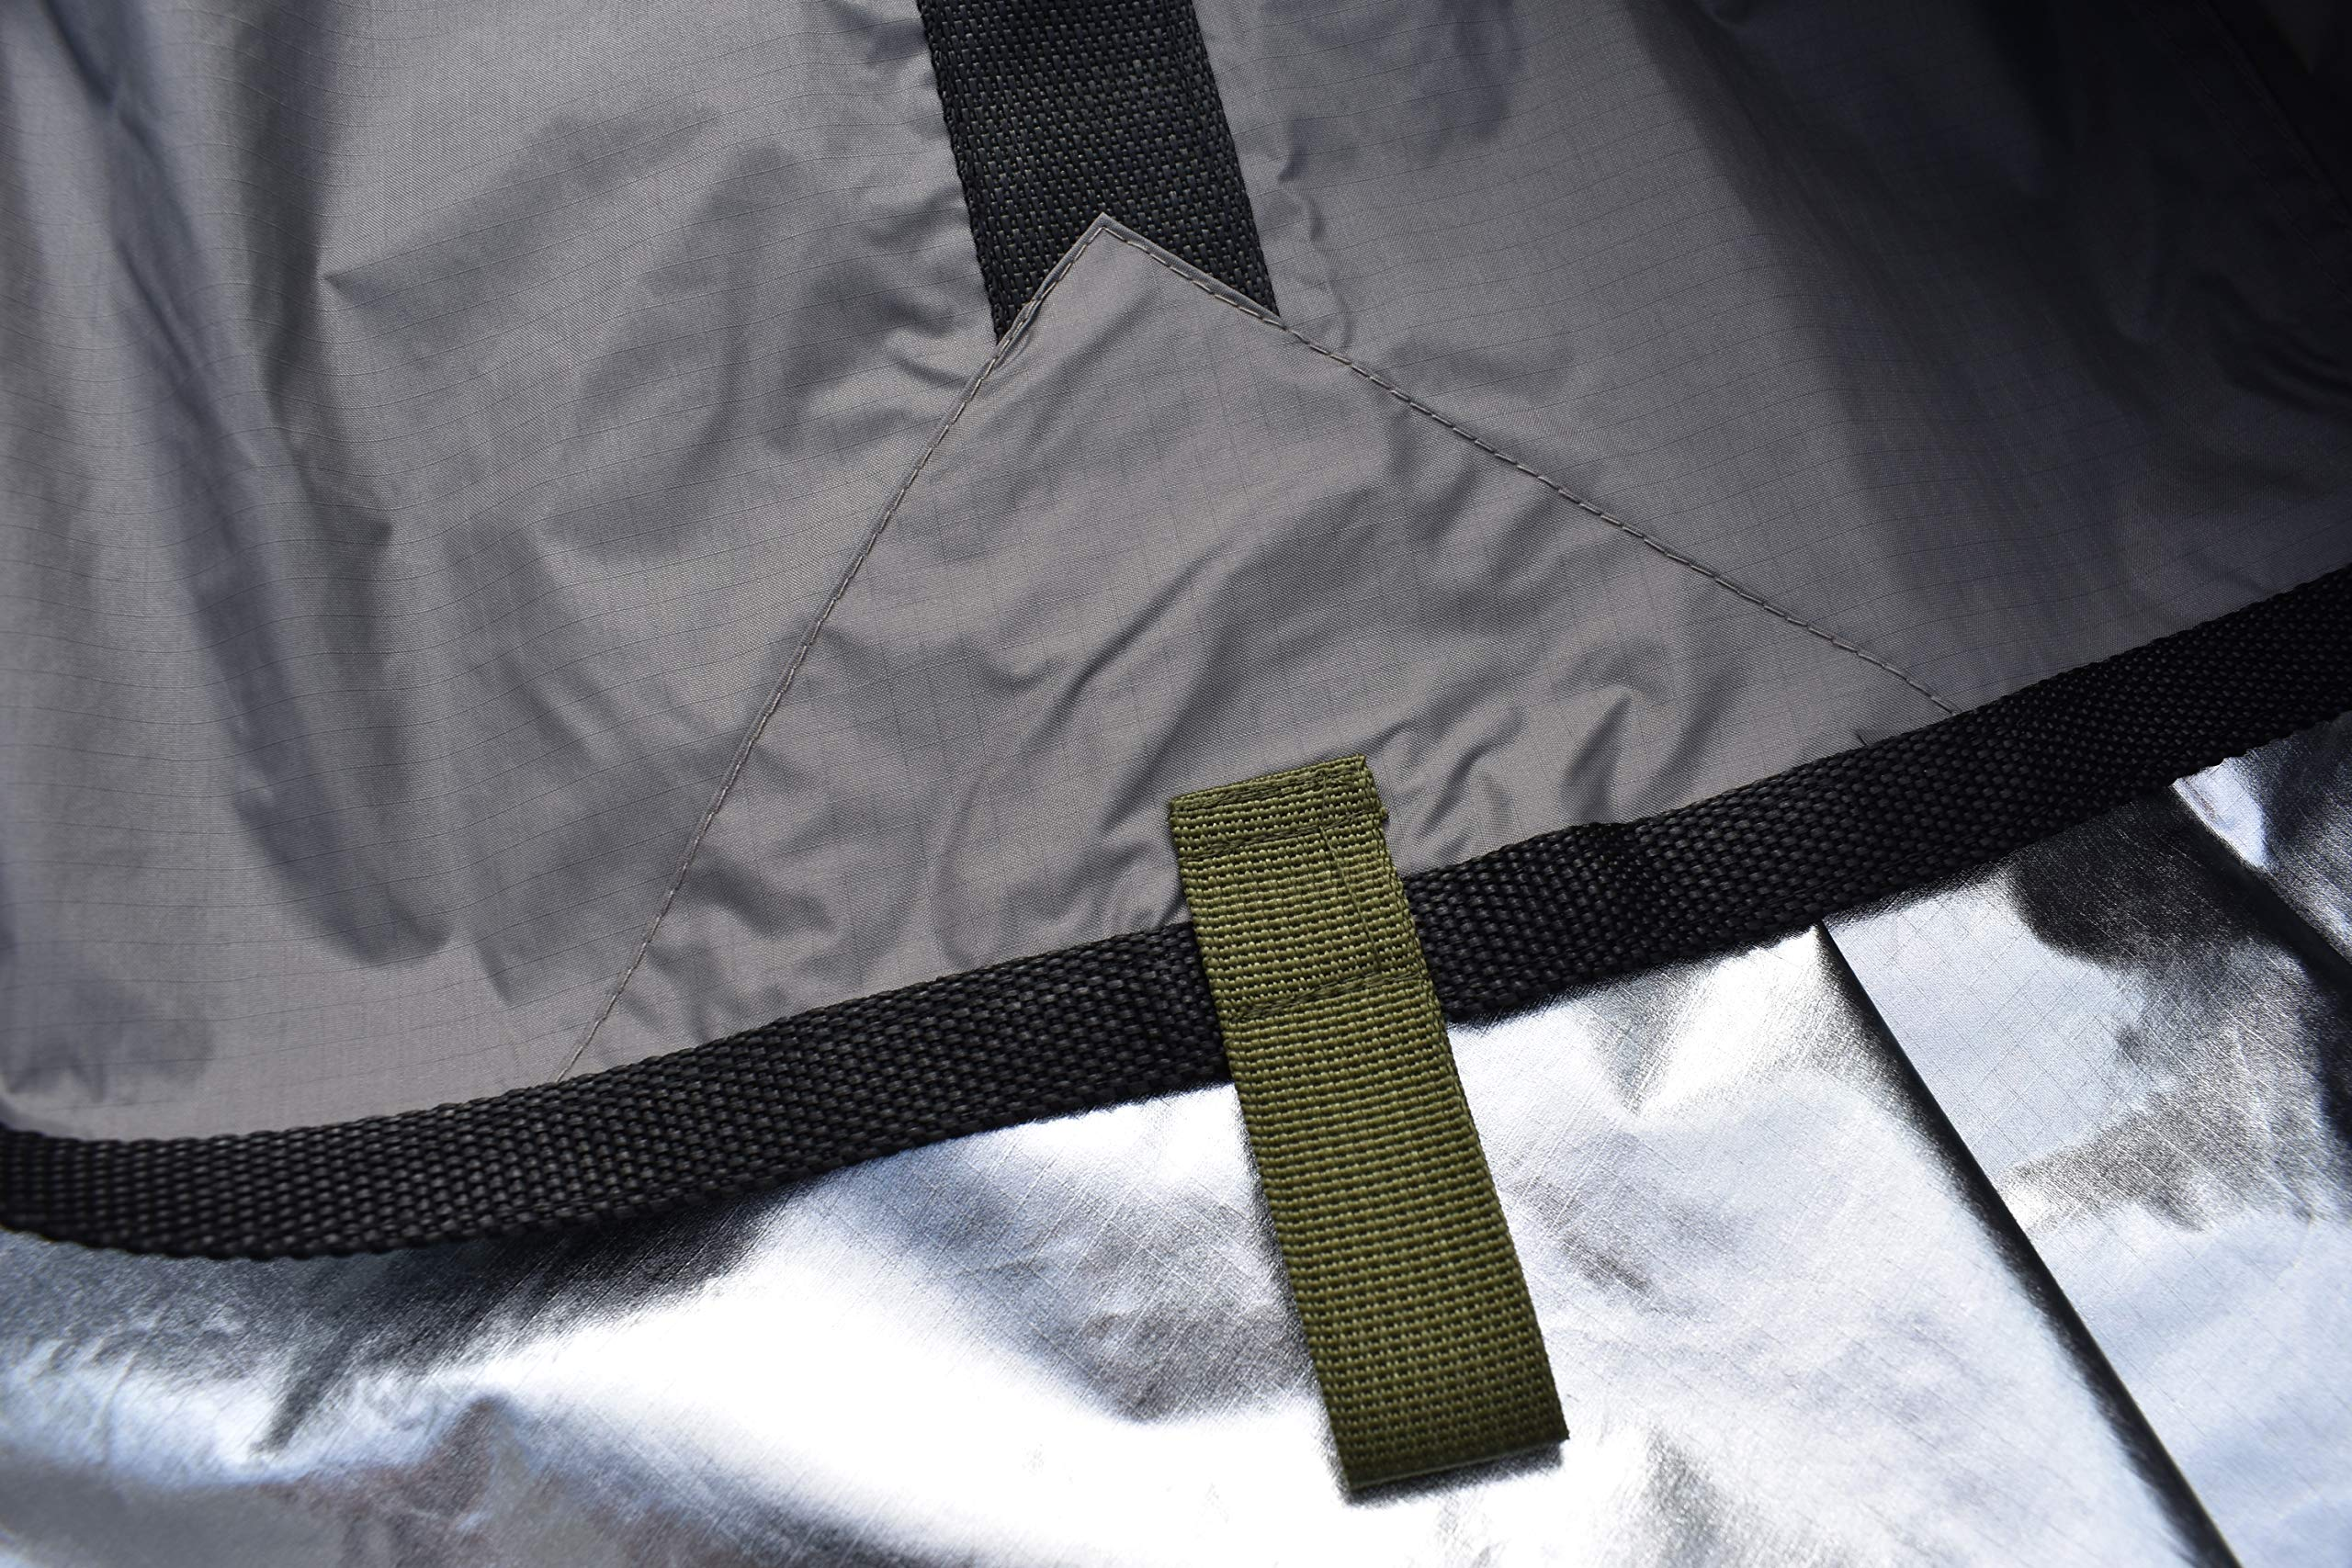 Arcadia Gear 10ft x 10ft Thermal Reflective Light Weight Water Proof Nylon Survival Tarp | The Mongrel EDT | Designed for When Your Life Depends On It by Arcadia Gear